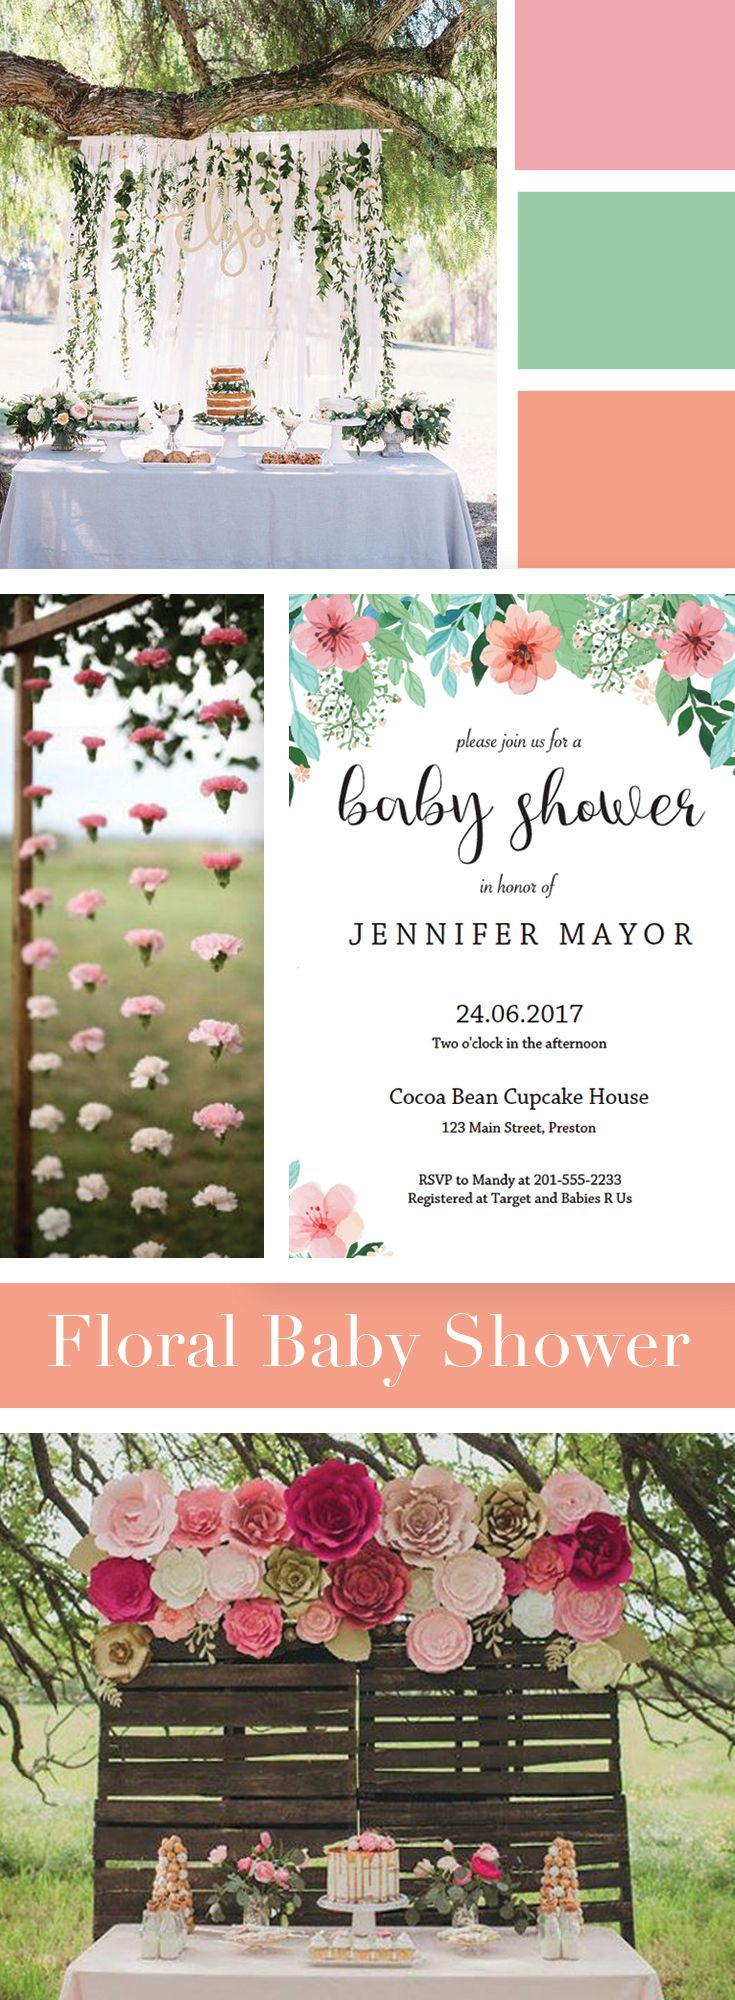 Floral Baby Shower Girl Theme by LittleSizzle. Floral Invitation Printable for your Baby Shower. Make the perfect announcement with this floralbaby shower invitation. Easily personalize the invitation with your own words. Simply download, edit, print and trim!